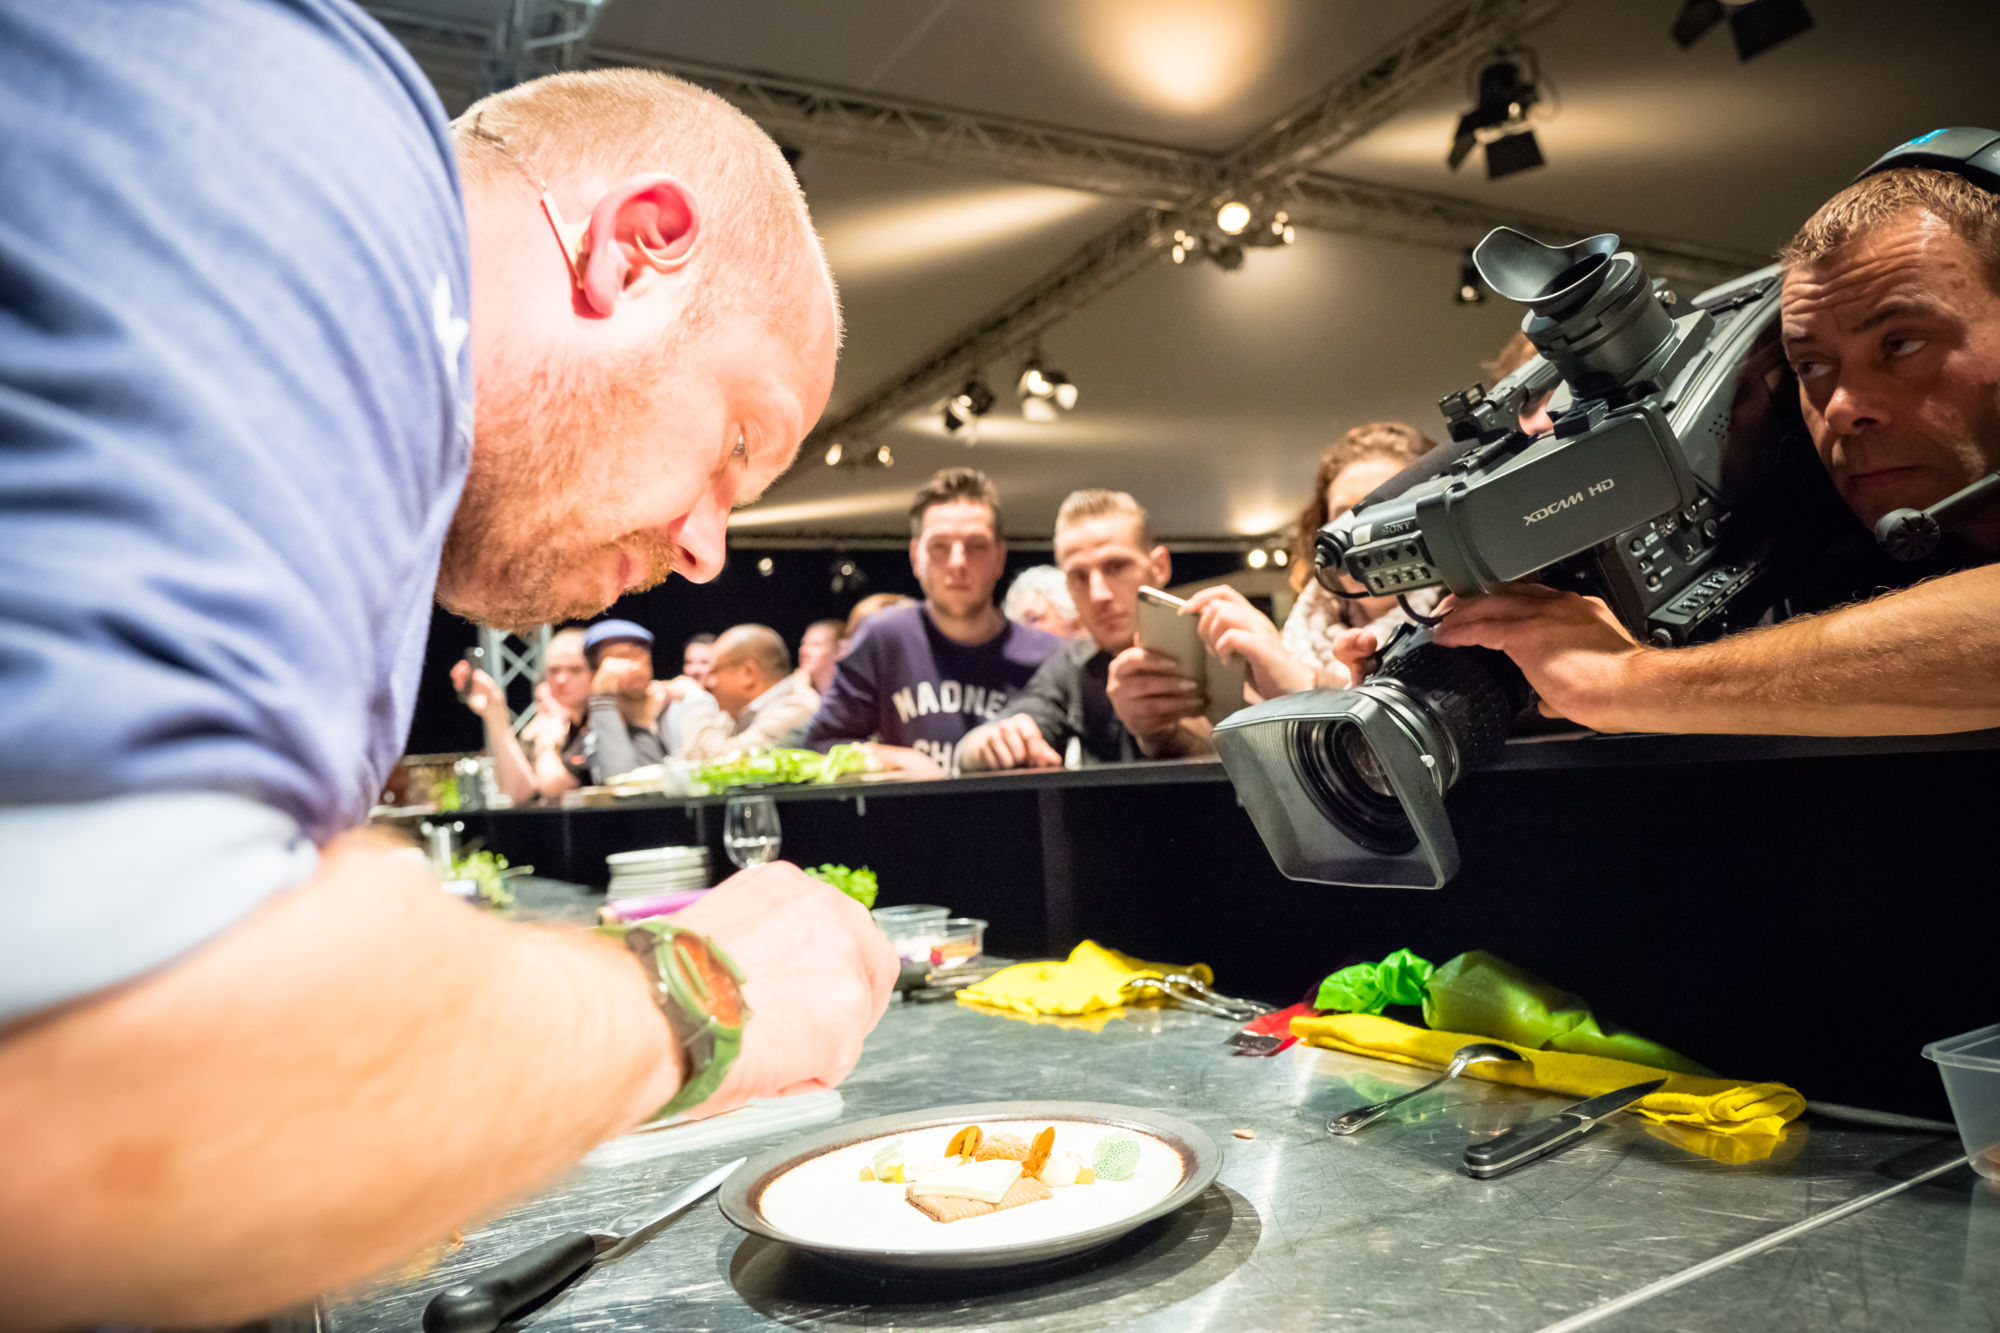 Event reportage (BBB Maastricht)